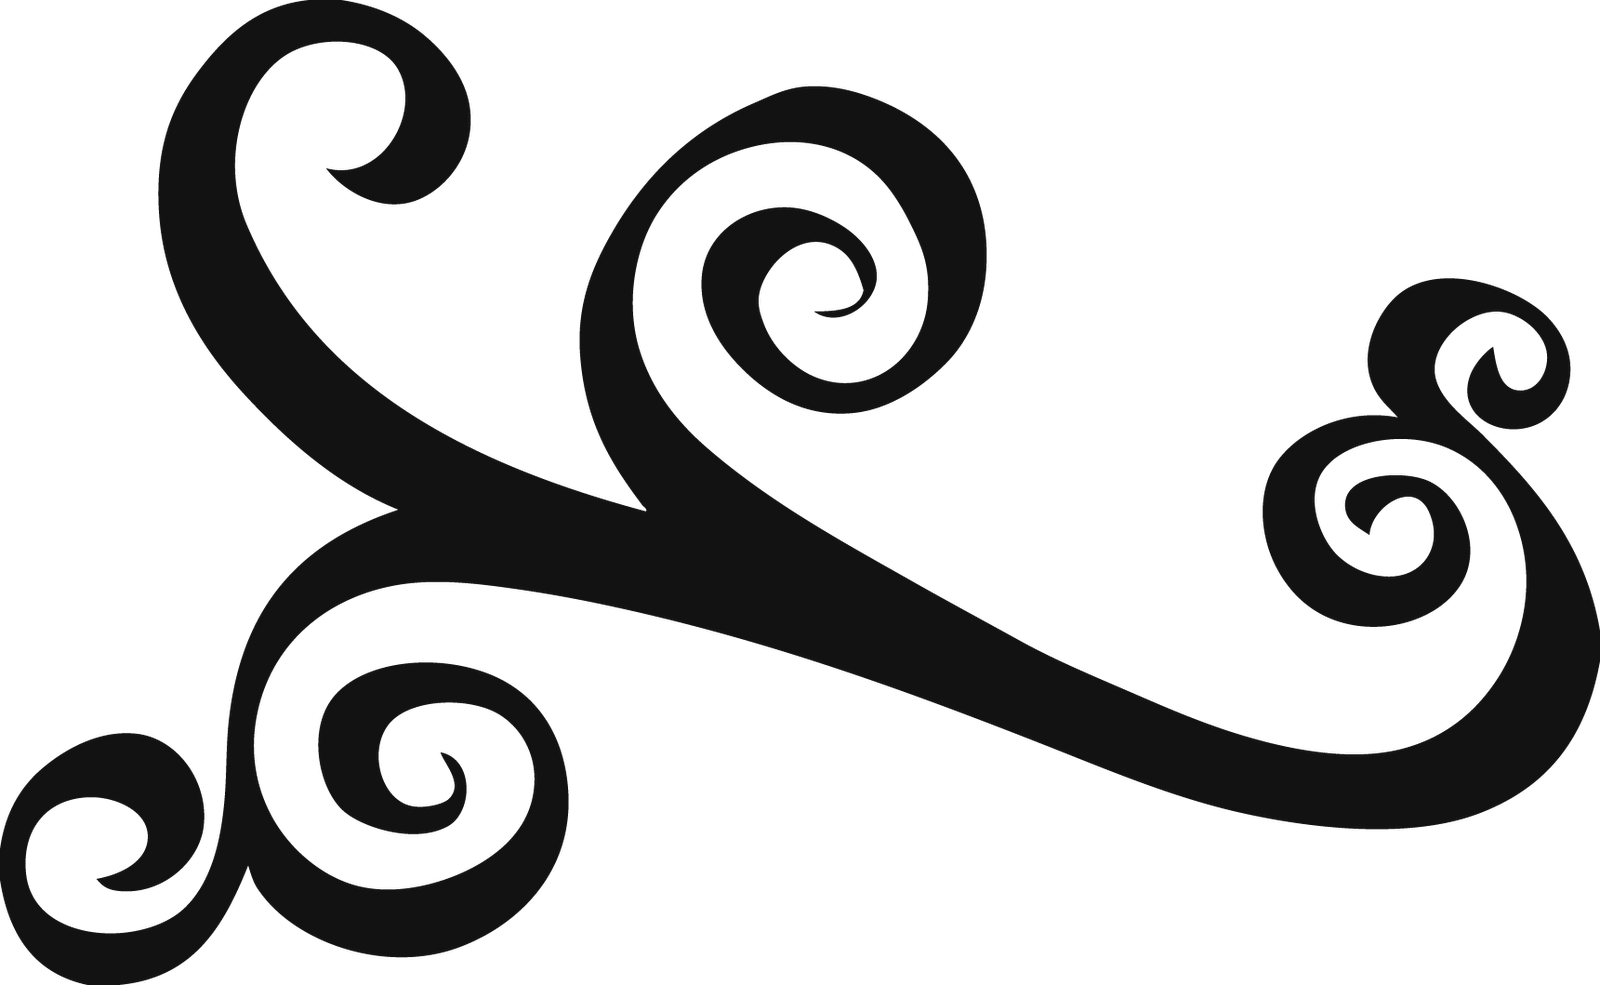 Free Images Of Swirls Download Free Clip Art Free Clip